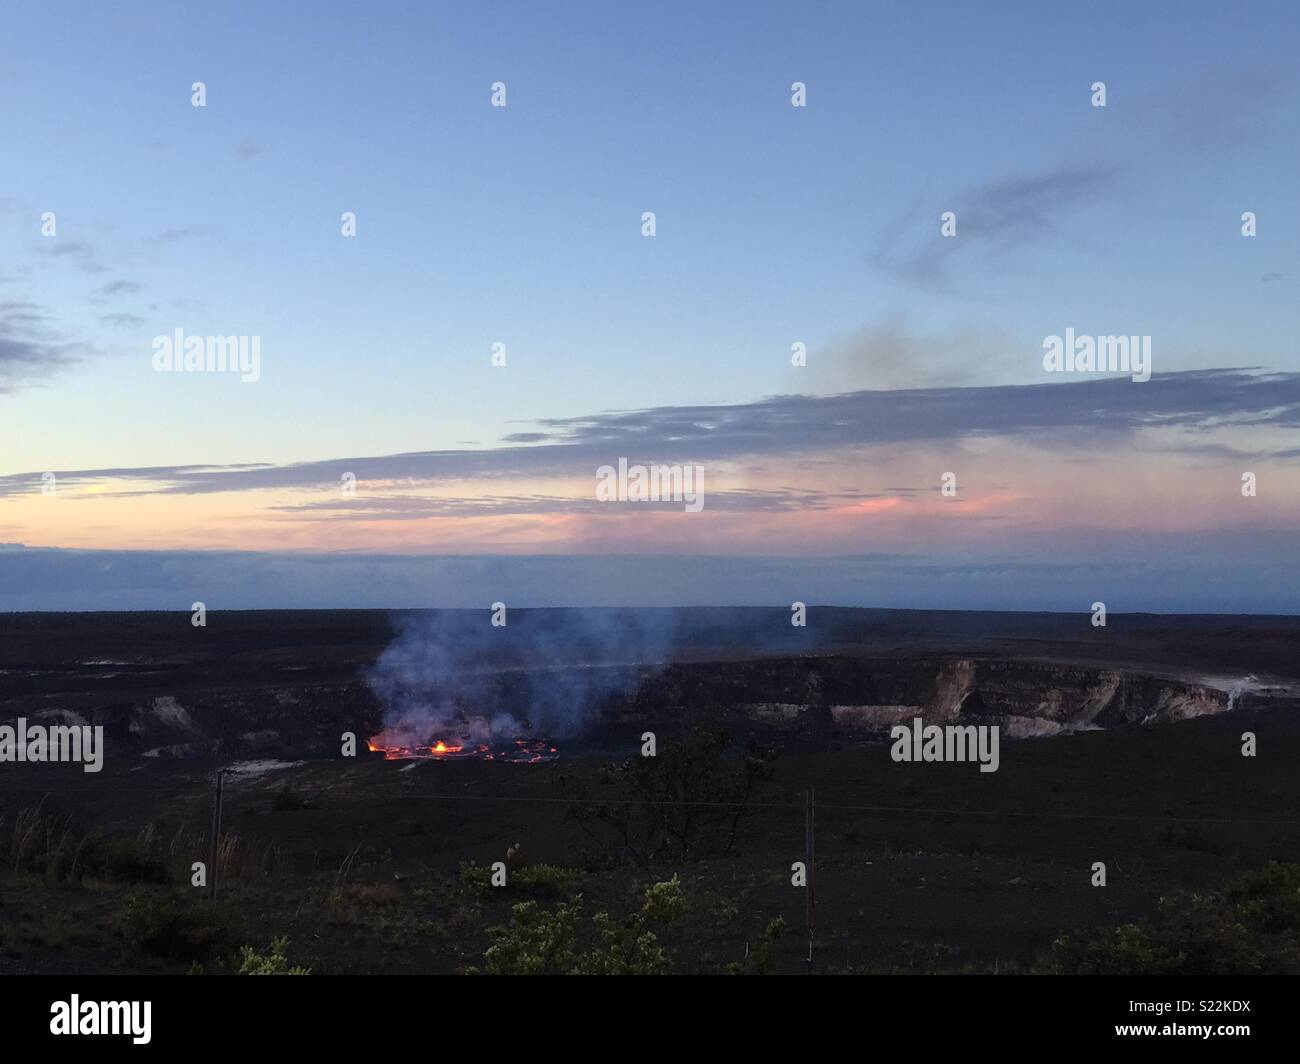 Kilauea Volcano summit from the Jaggar Museum lookout in Hawaii Volcanos National Park. Taken on 24th April 2018 - Stock Image